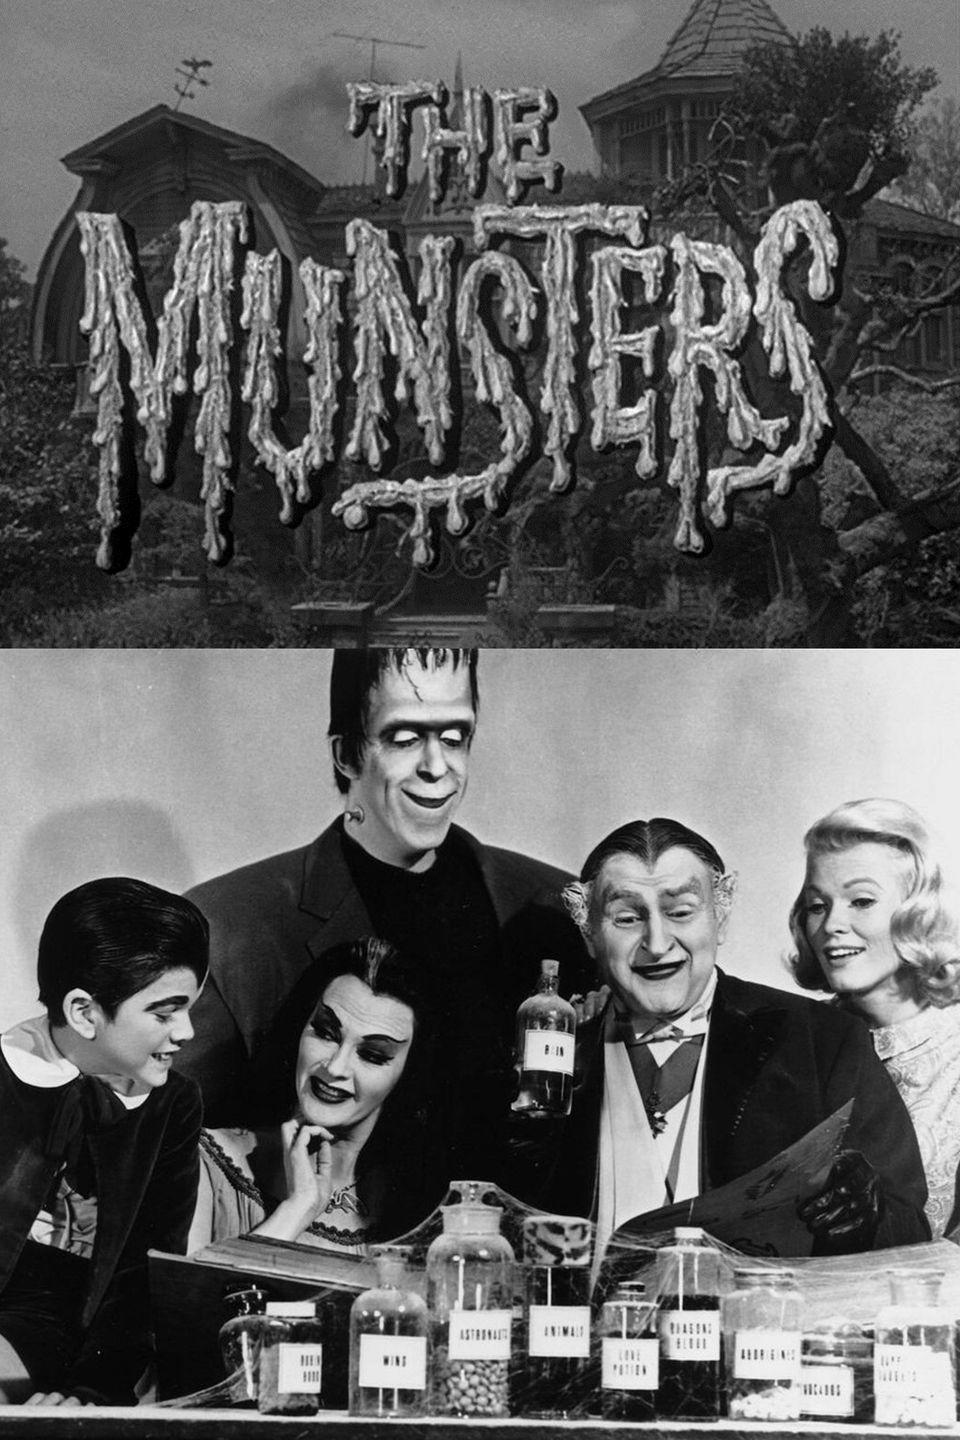 <p>The original series ran for two seasons on CBS from 1964 to 1966.</p>